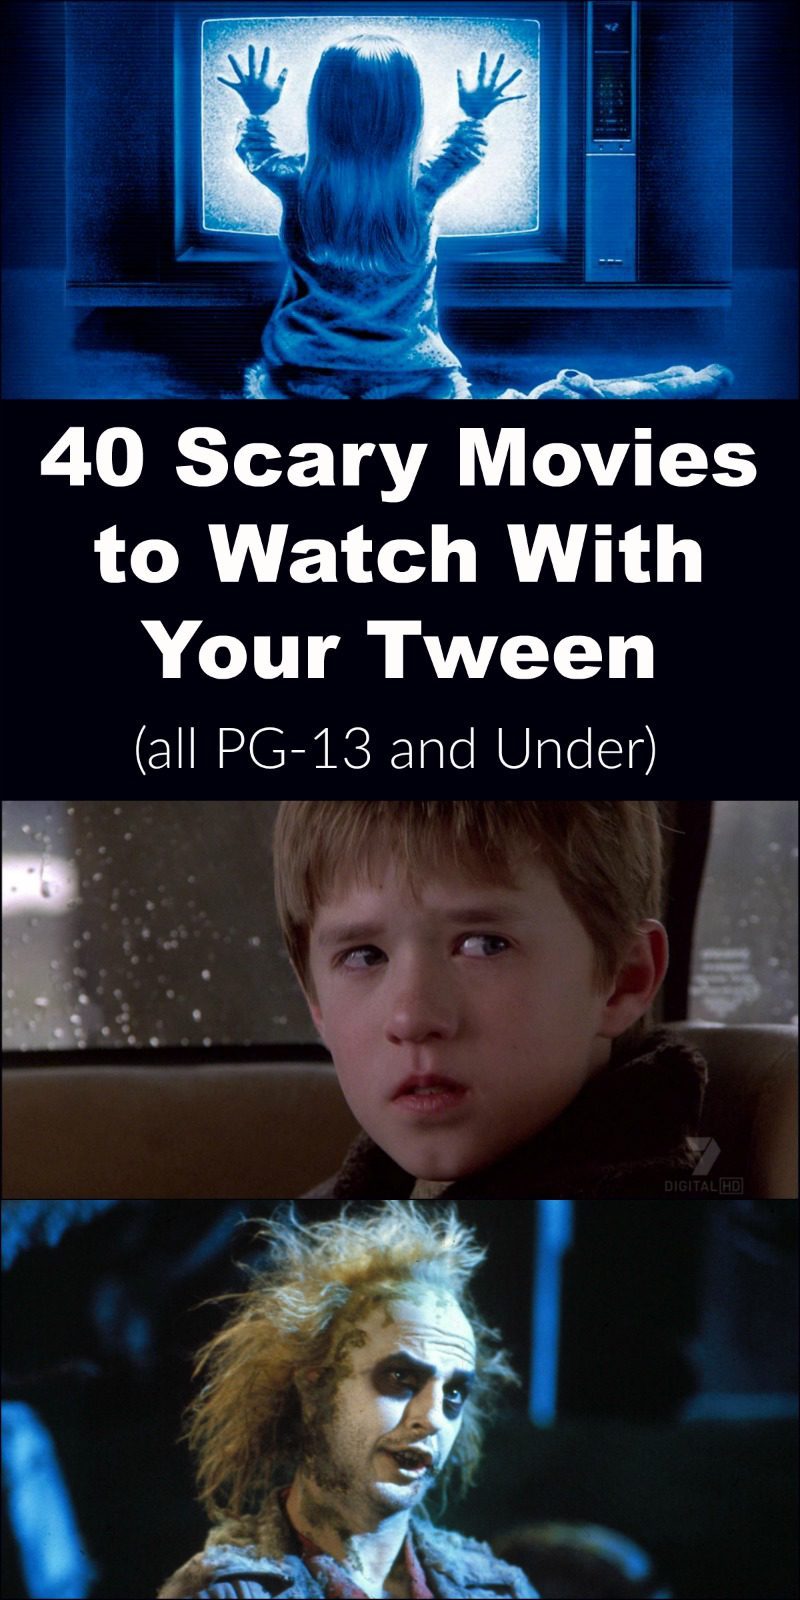 Planning on staying in with your tween this Halloween? Make it a fun family movie night with these 40 scary movies rated PG-13 and under!